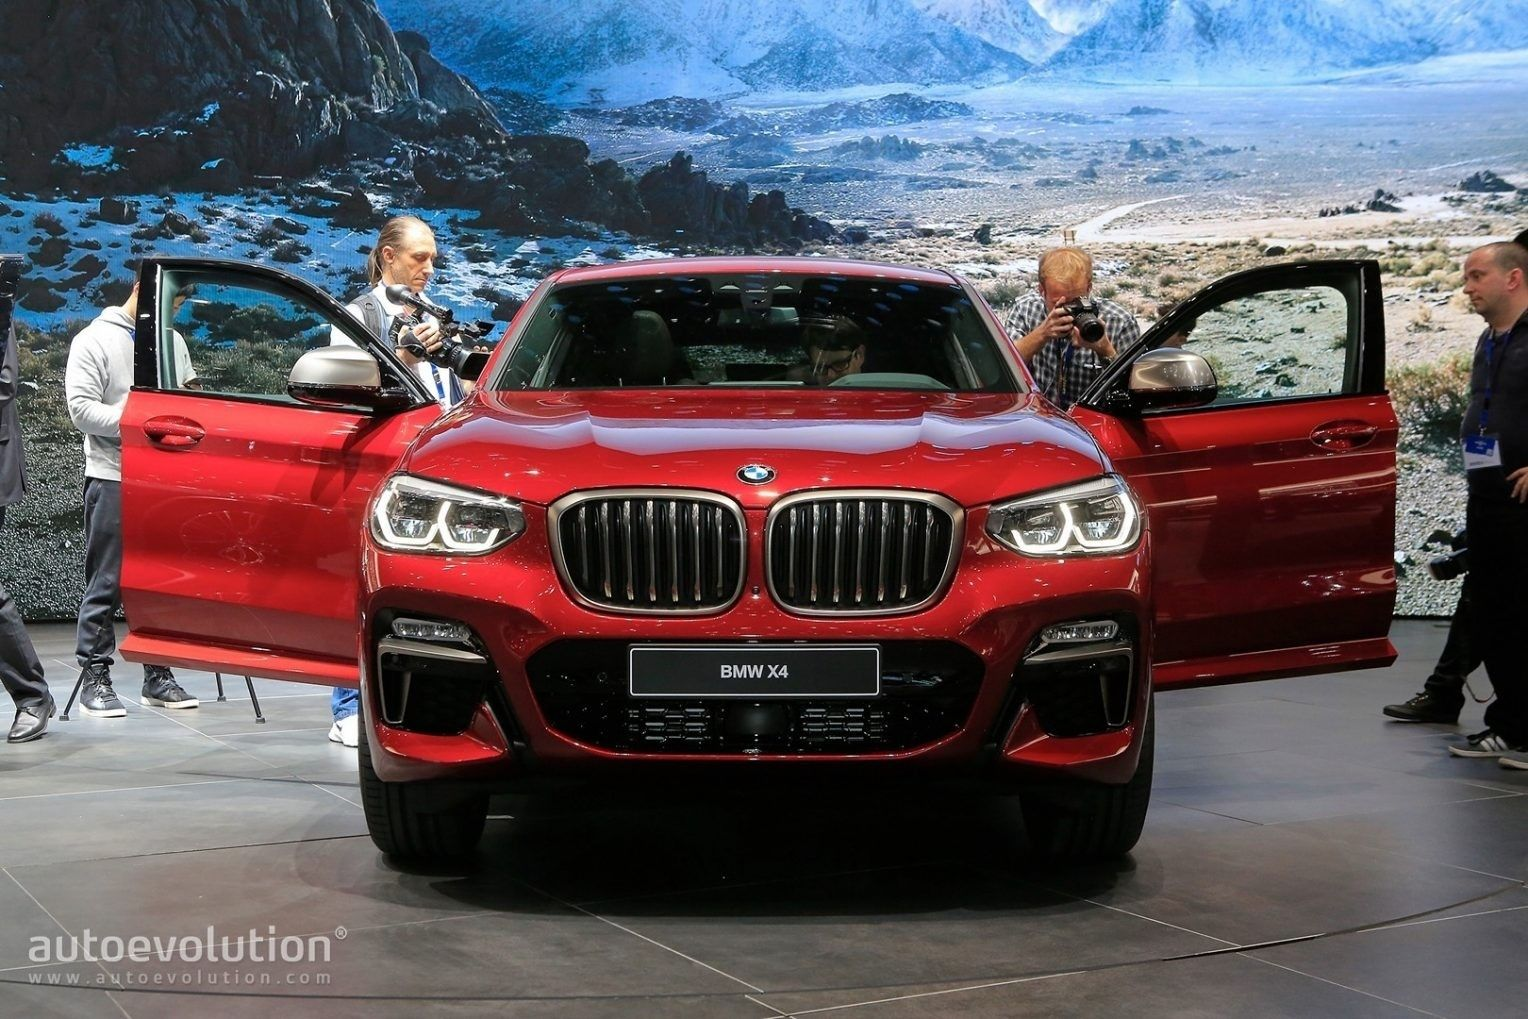 New 2019 Bmw X6 Exterior And Interior Review Bmw X6 Bmw X6